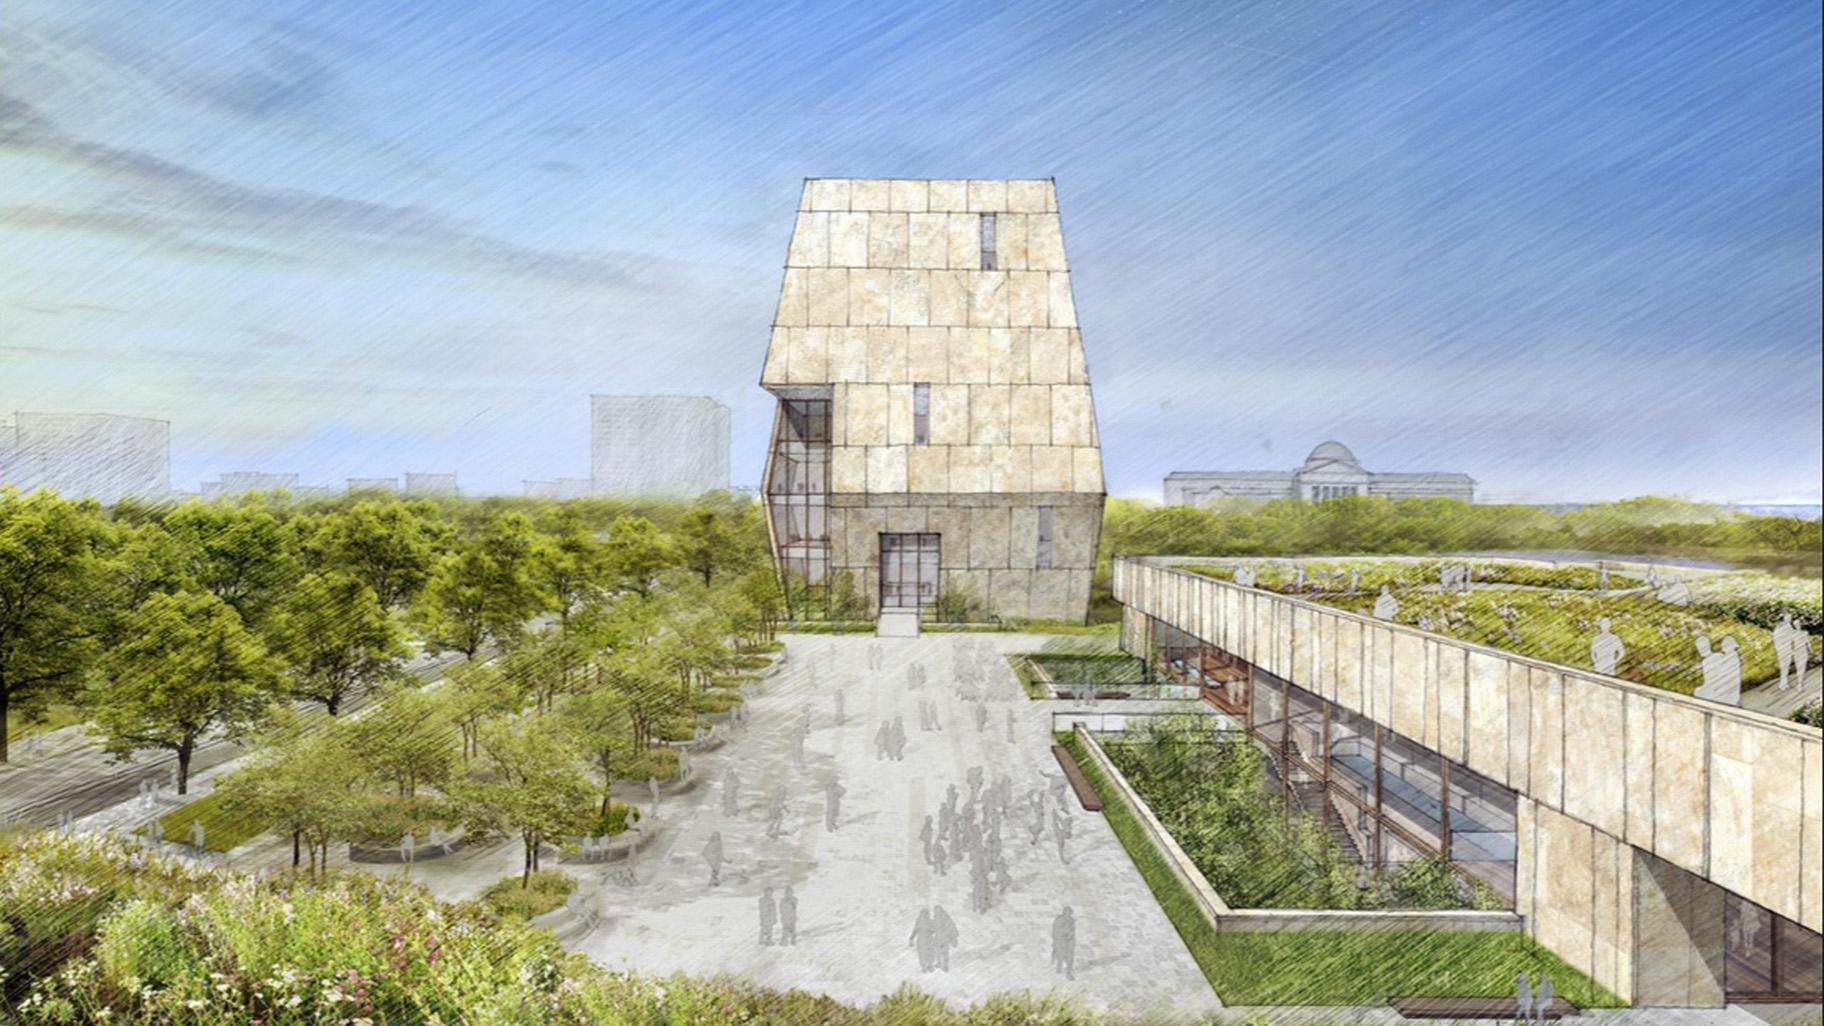 This illustration released on May 3, 2017 by the Obama Foundation shows plans for the proposed Obama Presidential Center with a museum, rear, in Jackson Park. (Obama Foundation via AP, File)